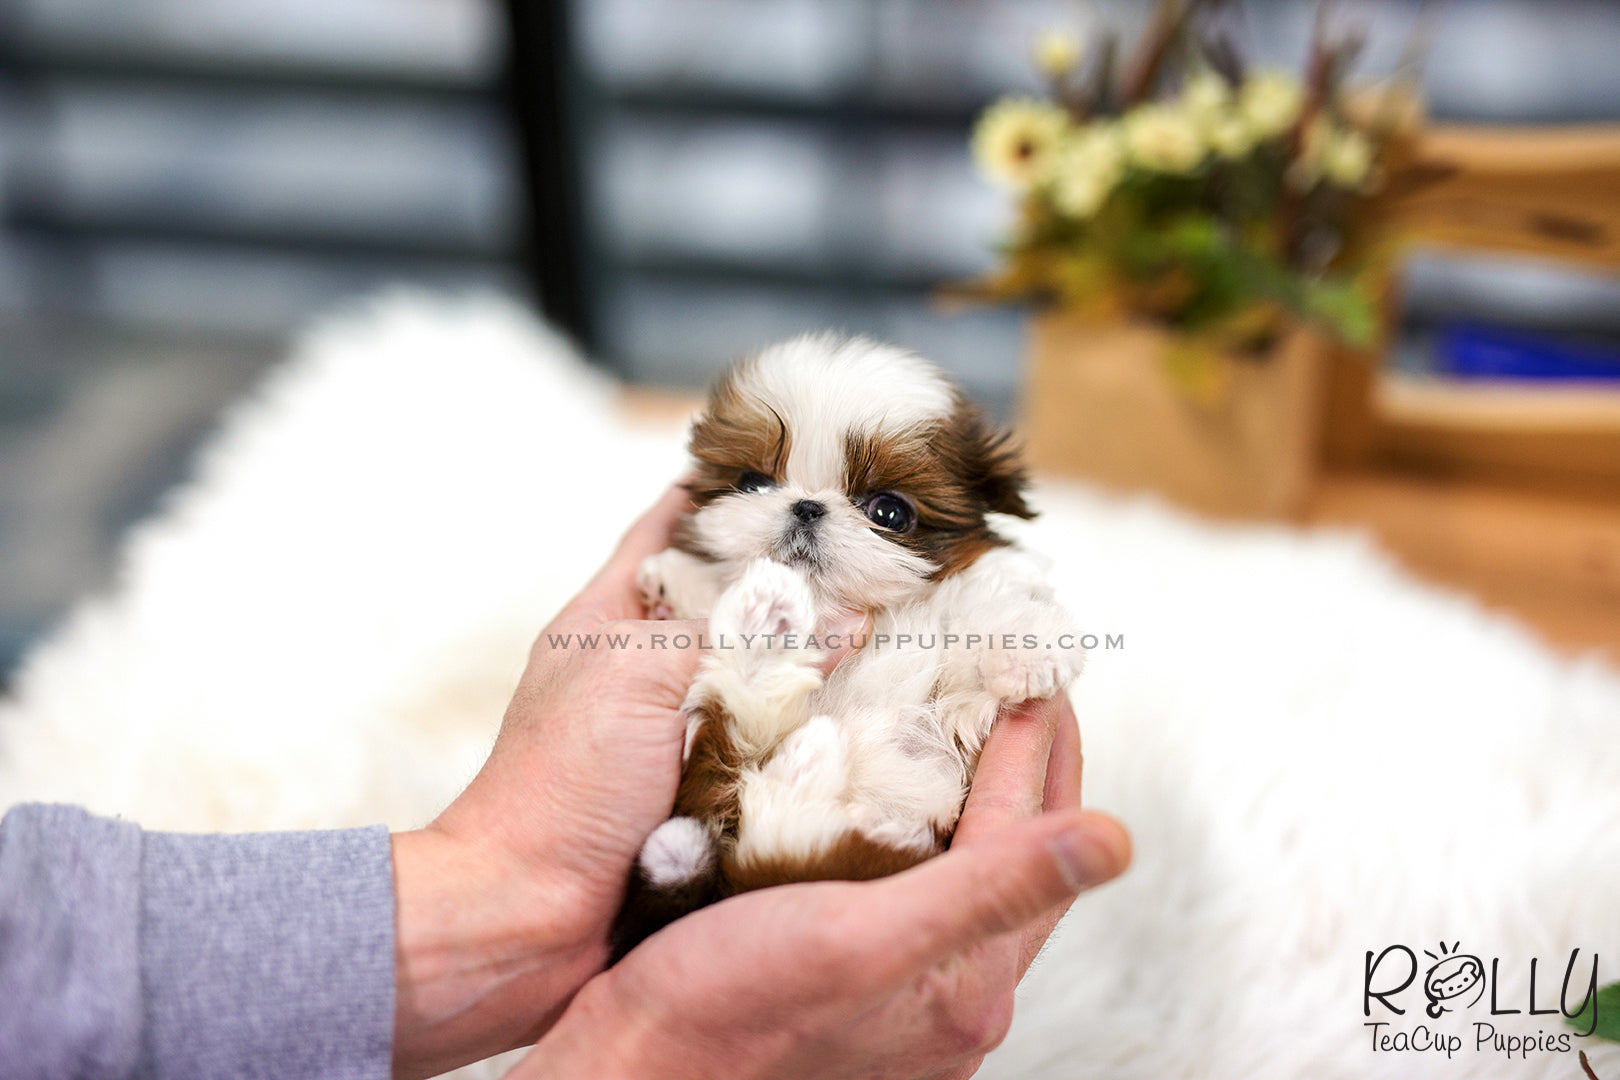 Sold To Zubrick Penny Shih Tzu F Rolly Teacup Puppies